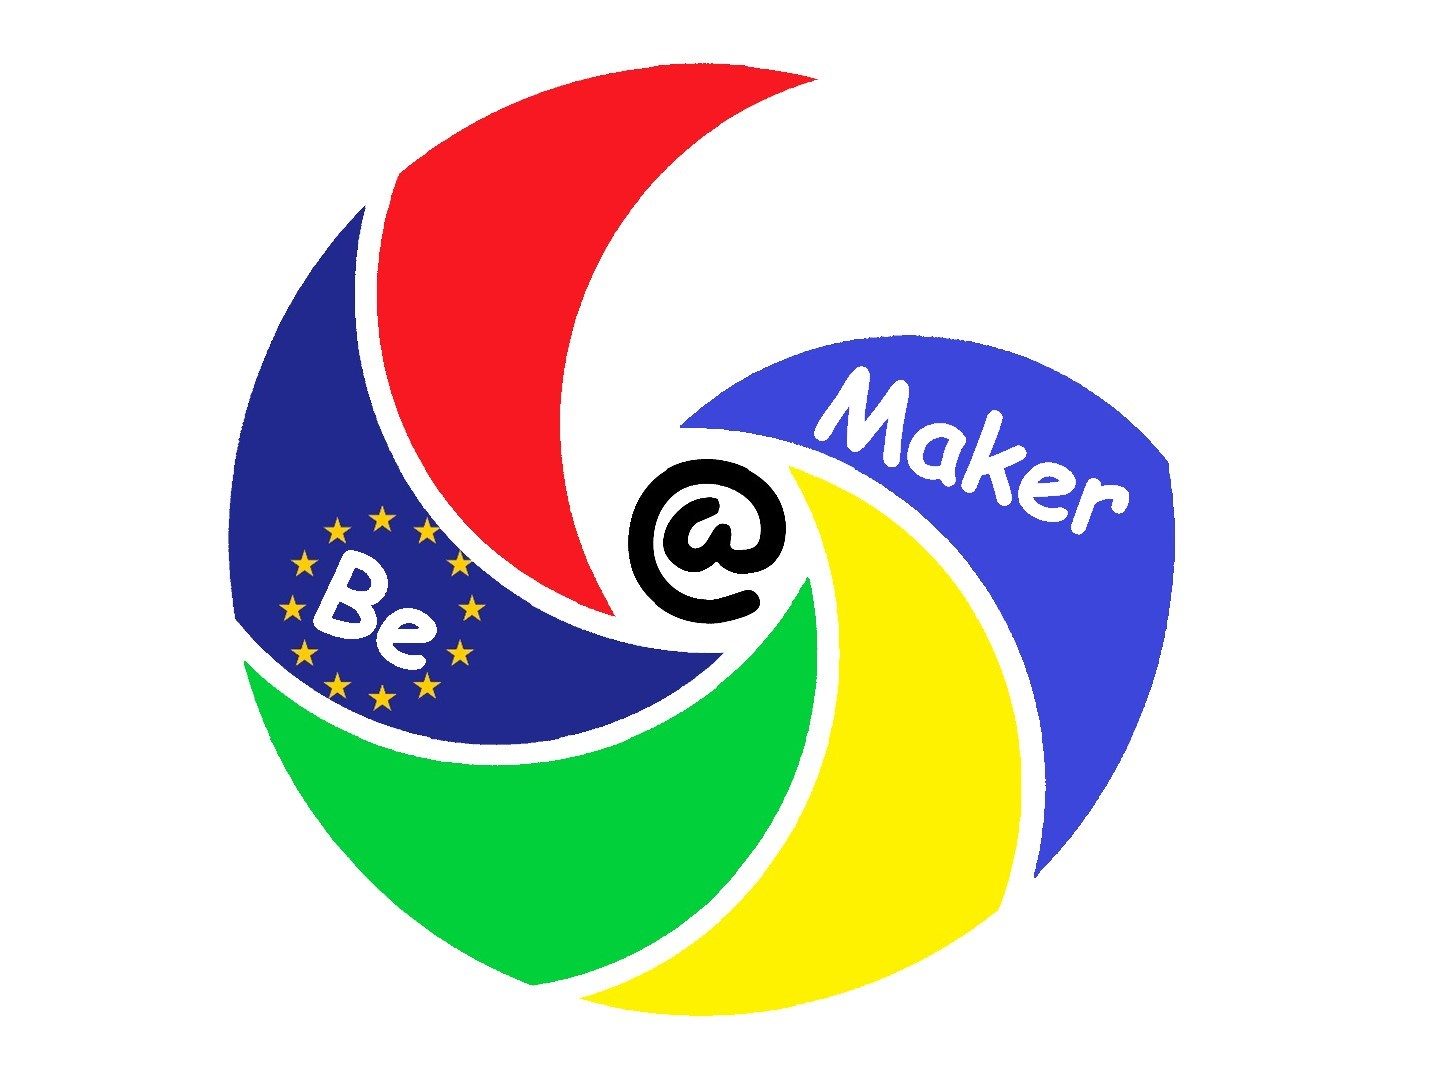 logo Be a Maker